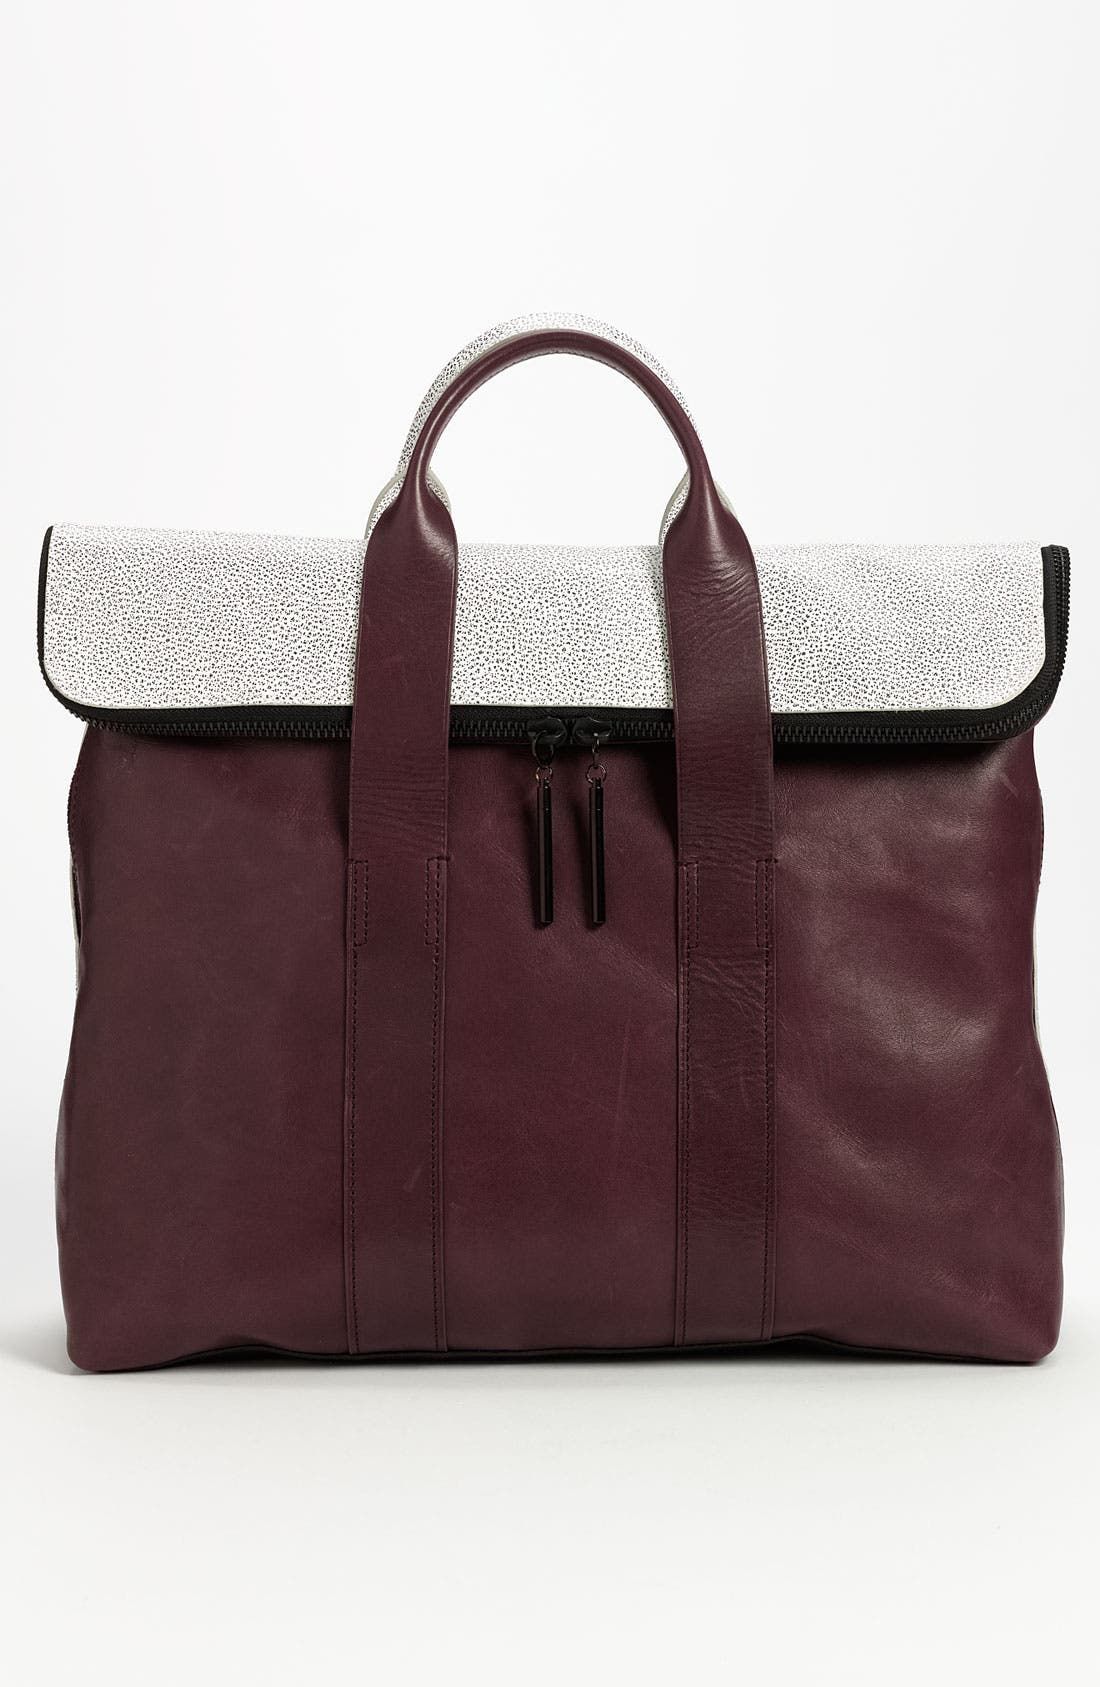 Alternate Image 1 Selected - 3.1 Phillip Lim '31 Hour' Leather Bag